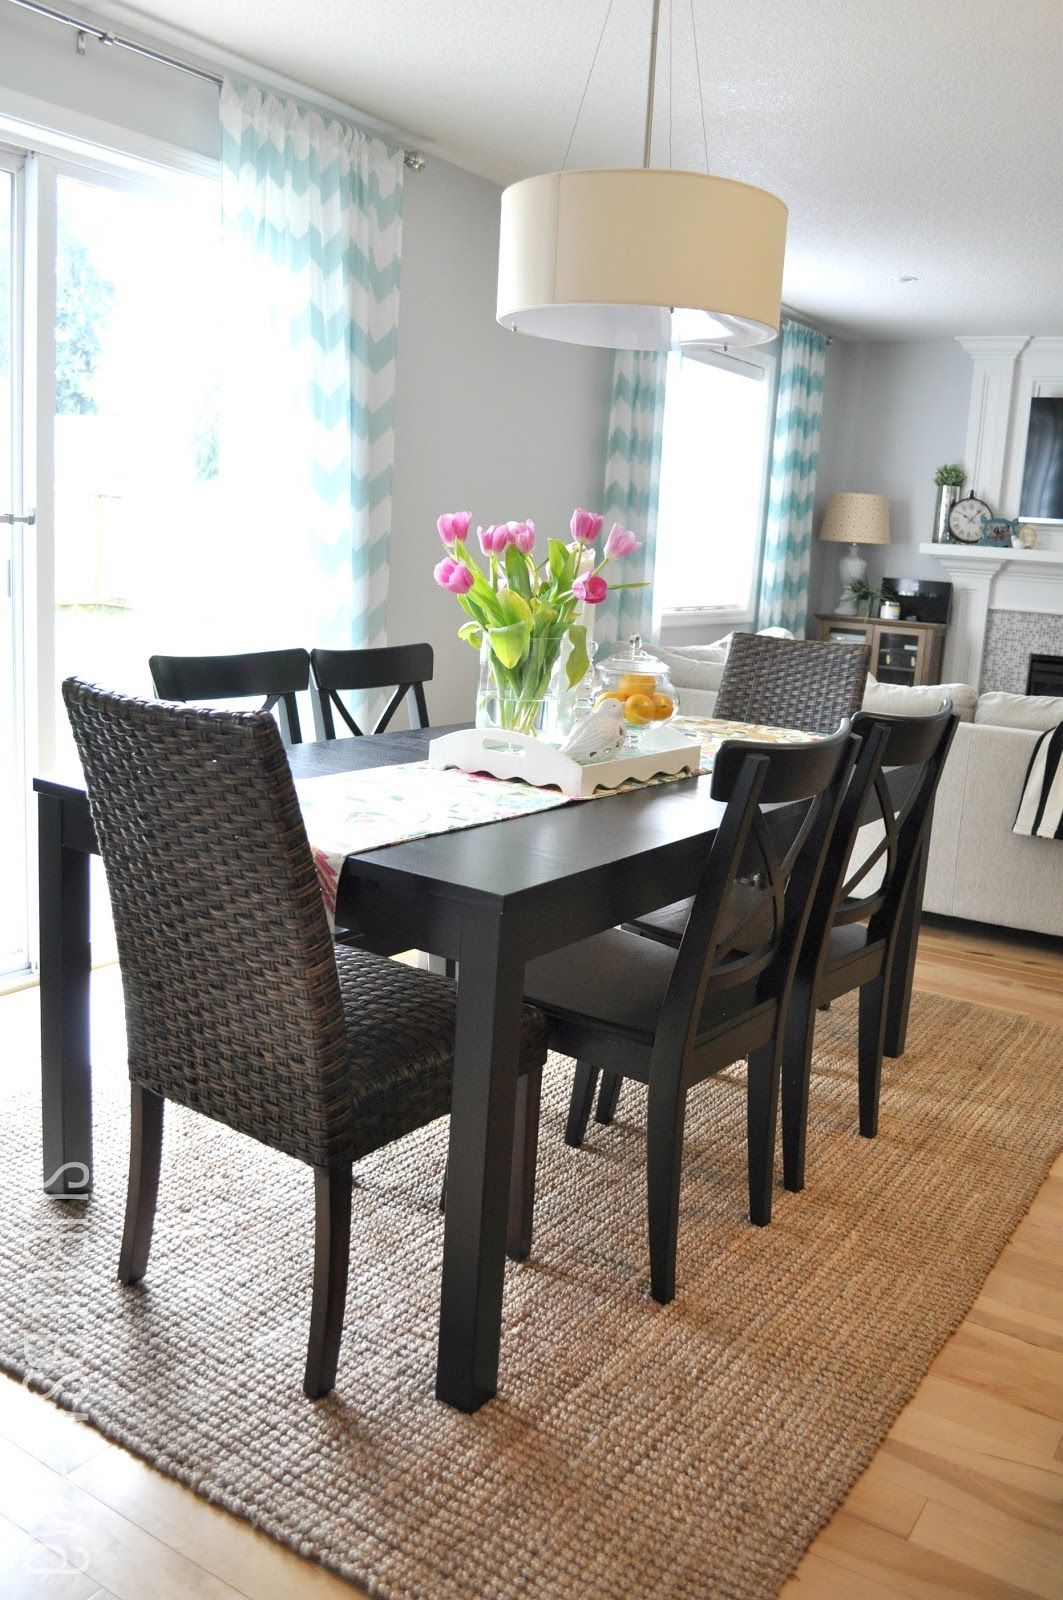 Suburbs Mama Dining Area Third Times The Charm Go To Www Likegossip Get More Gossip News